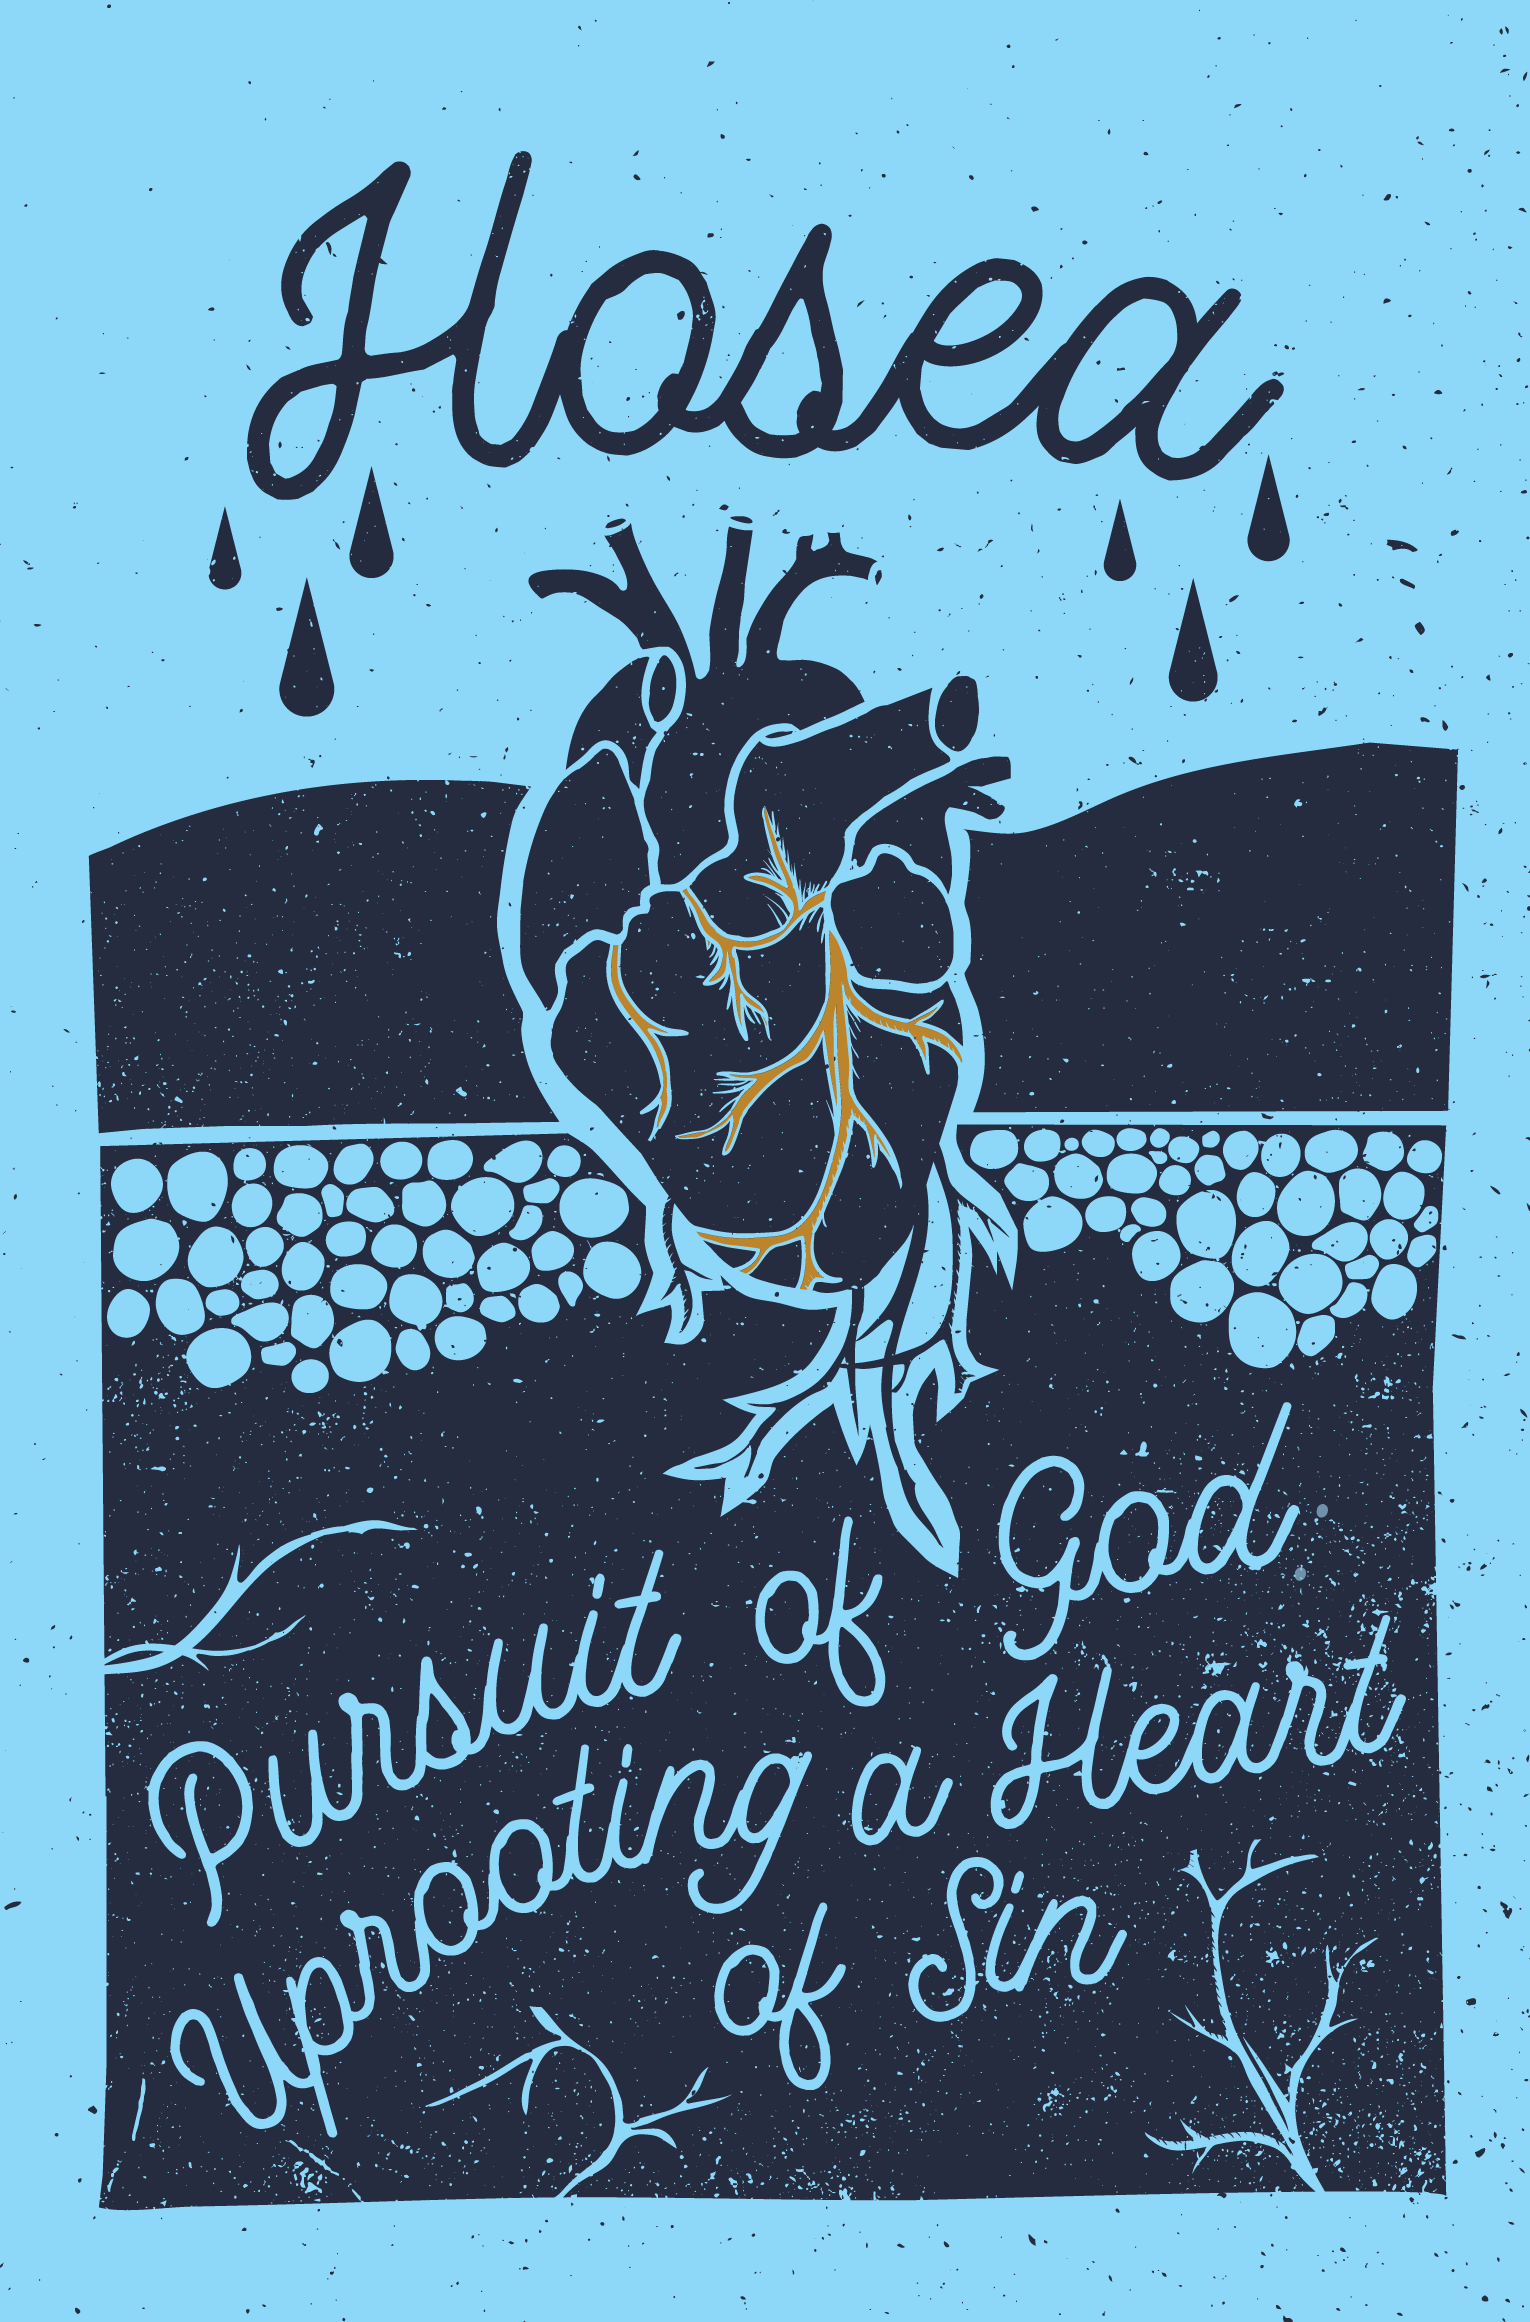 hosea poster 1@0.5x-8.png